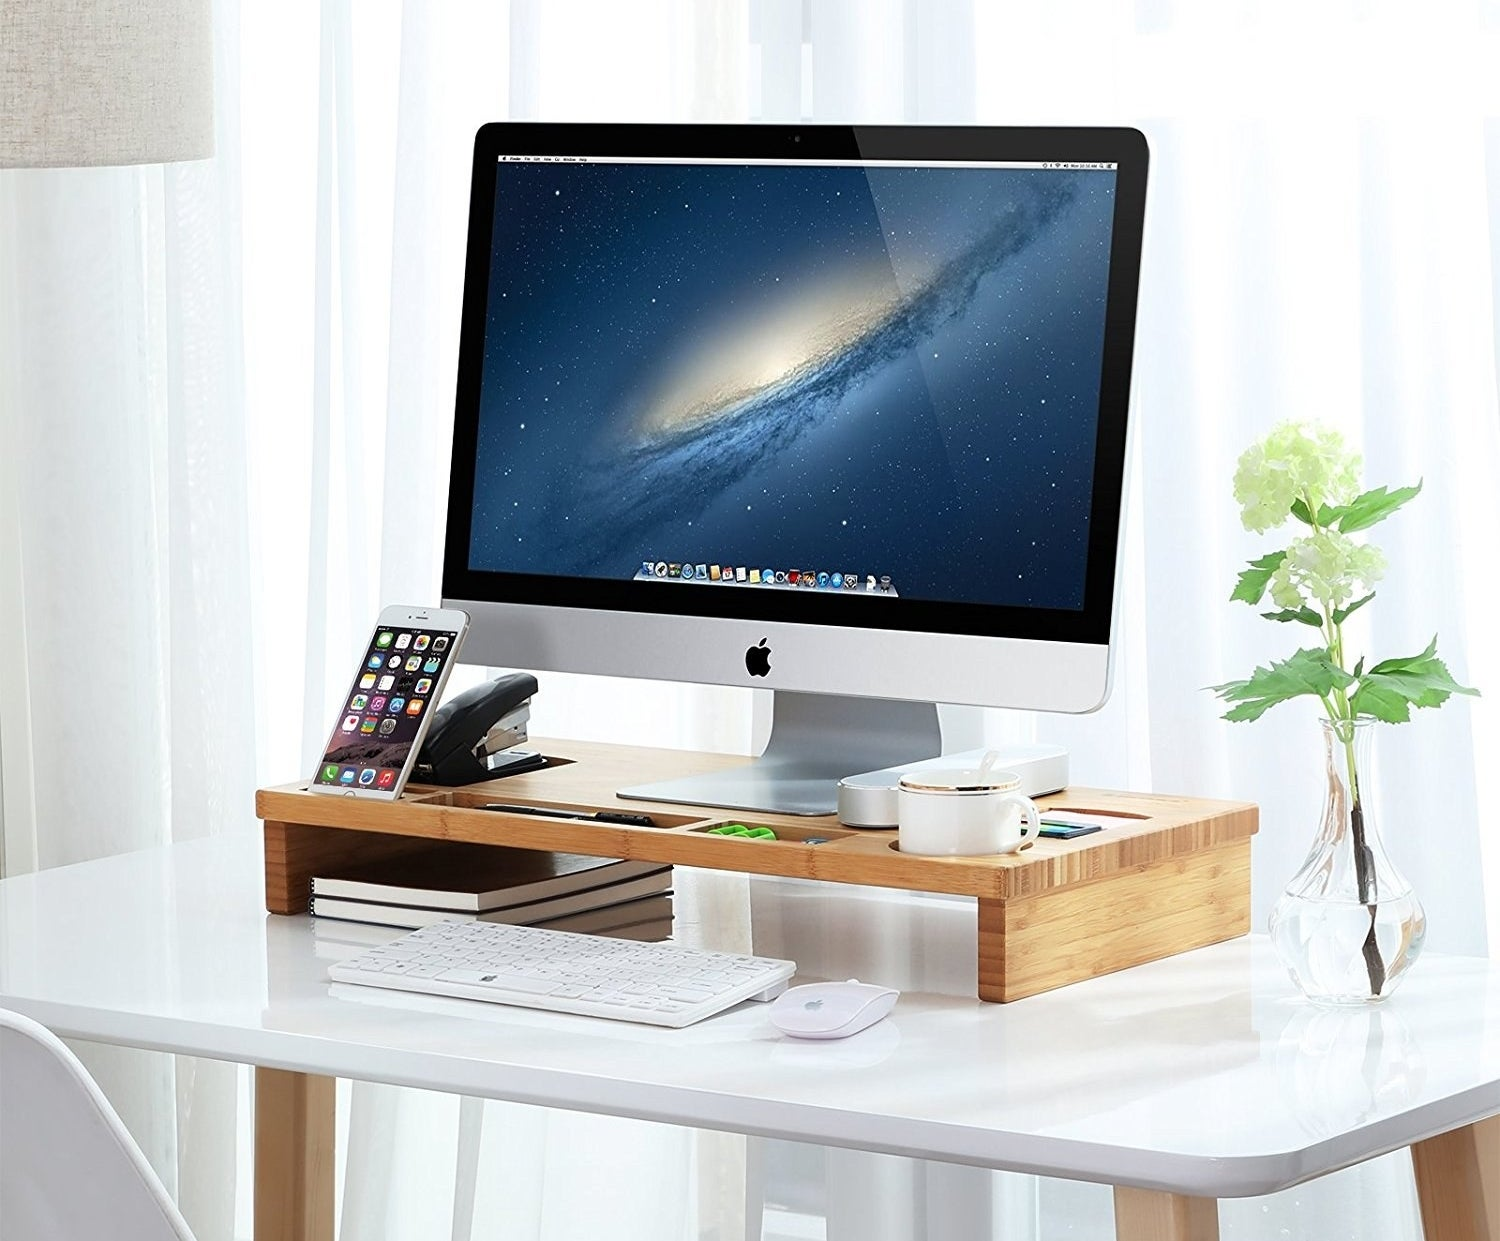 "Promising review: ""I absolutely LOVE this monitor stand. It has all the cubby holes I need for the things I typically use at my desk. It keeps my desk looking organized, and it's easy to grab things because everything is all right there."" —Sharing Life's MomentsGet it from Amazon for $29.99+ (available in three colors)."